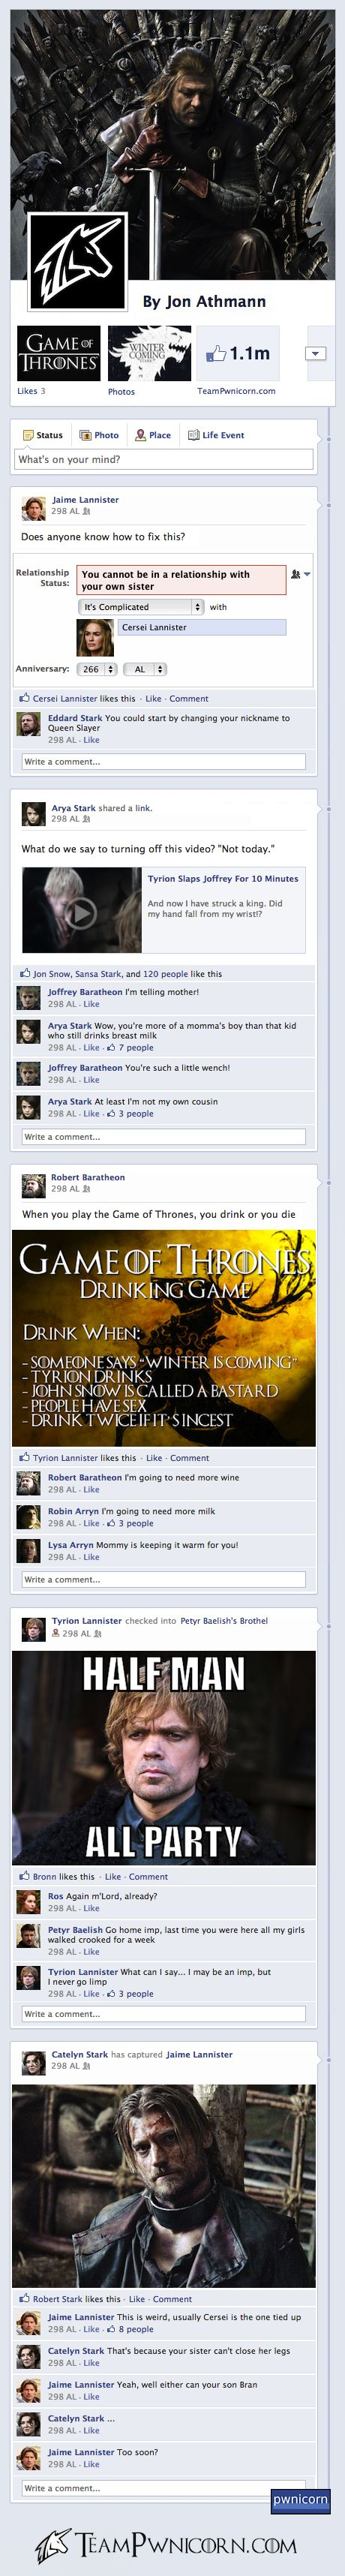 Game of Thrones on Facebook - Imgur... Too funny!